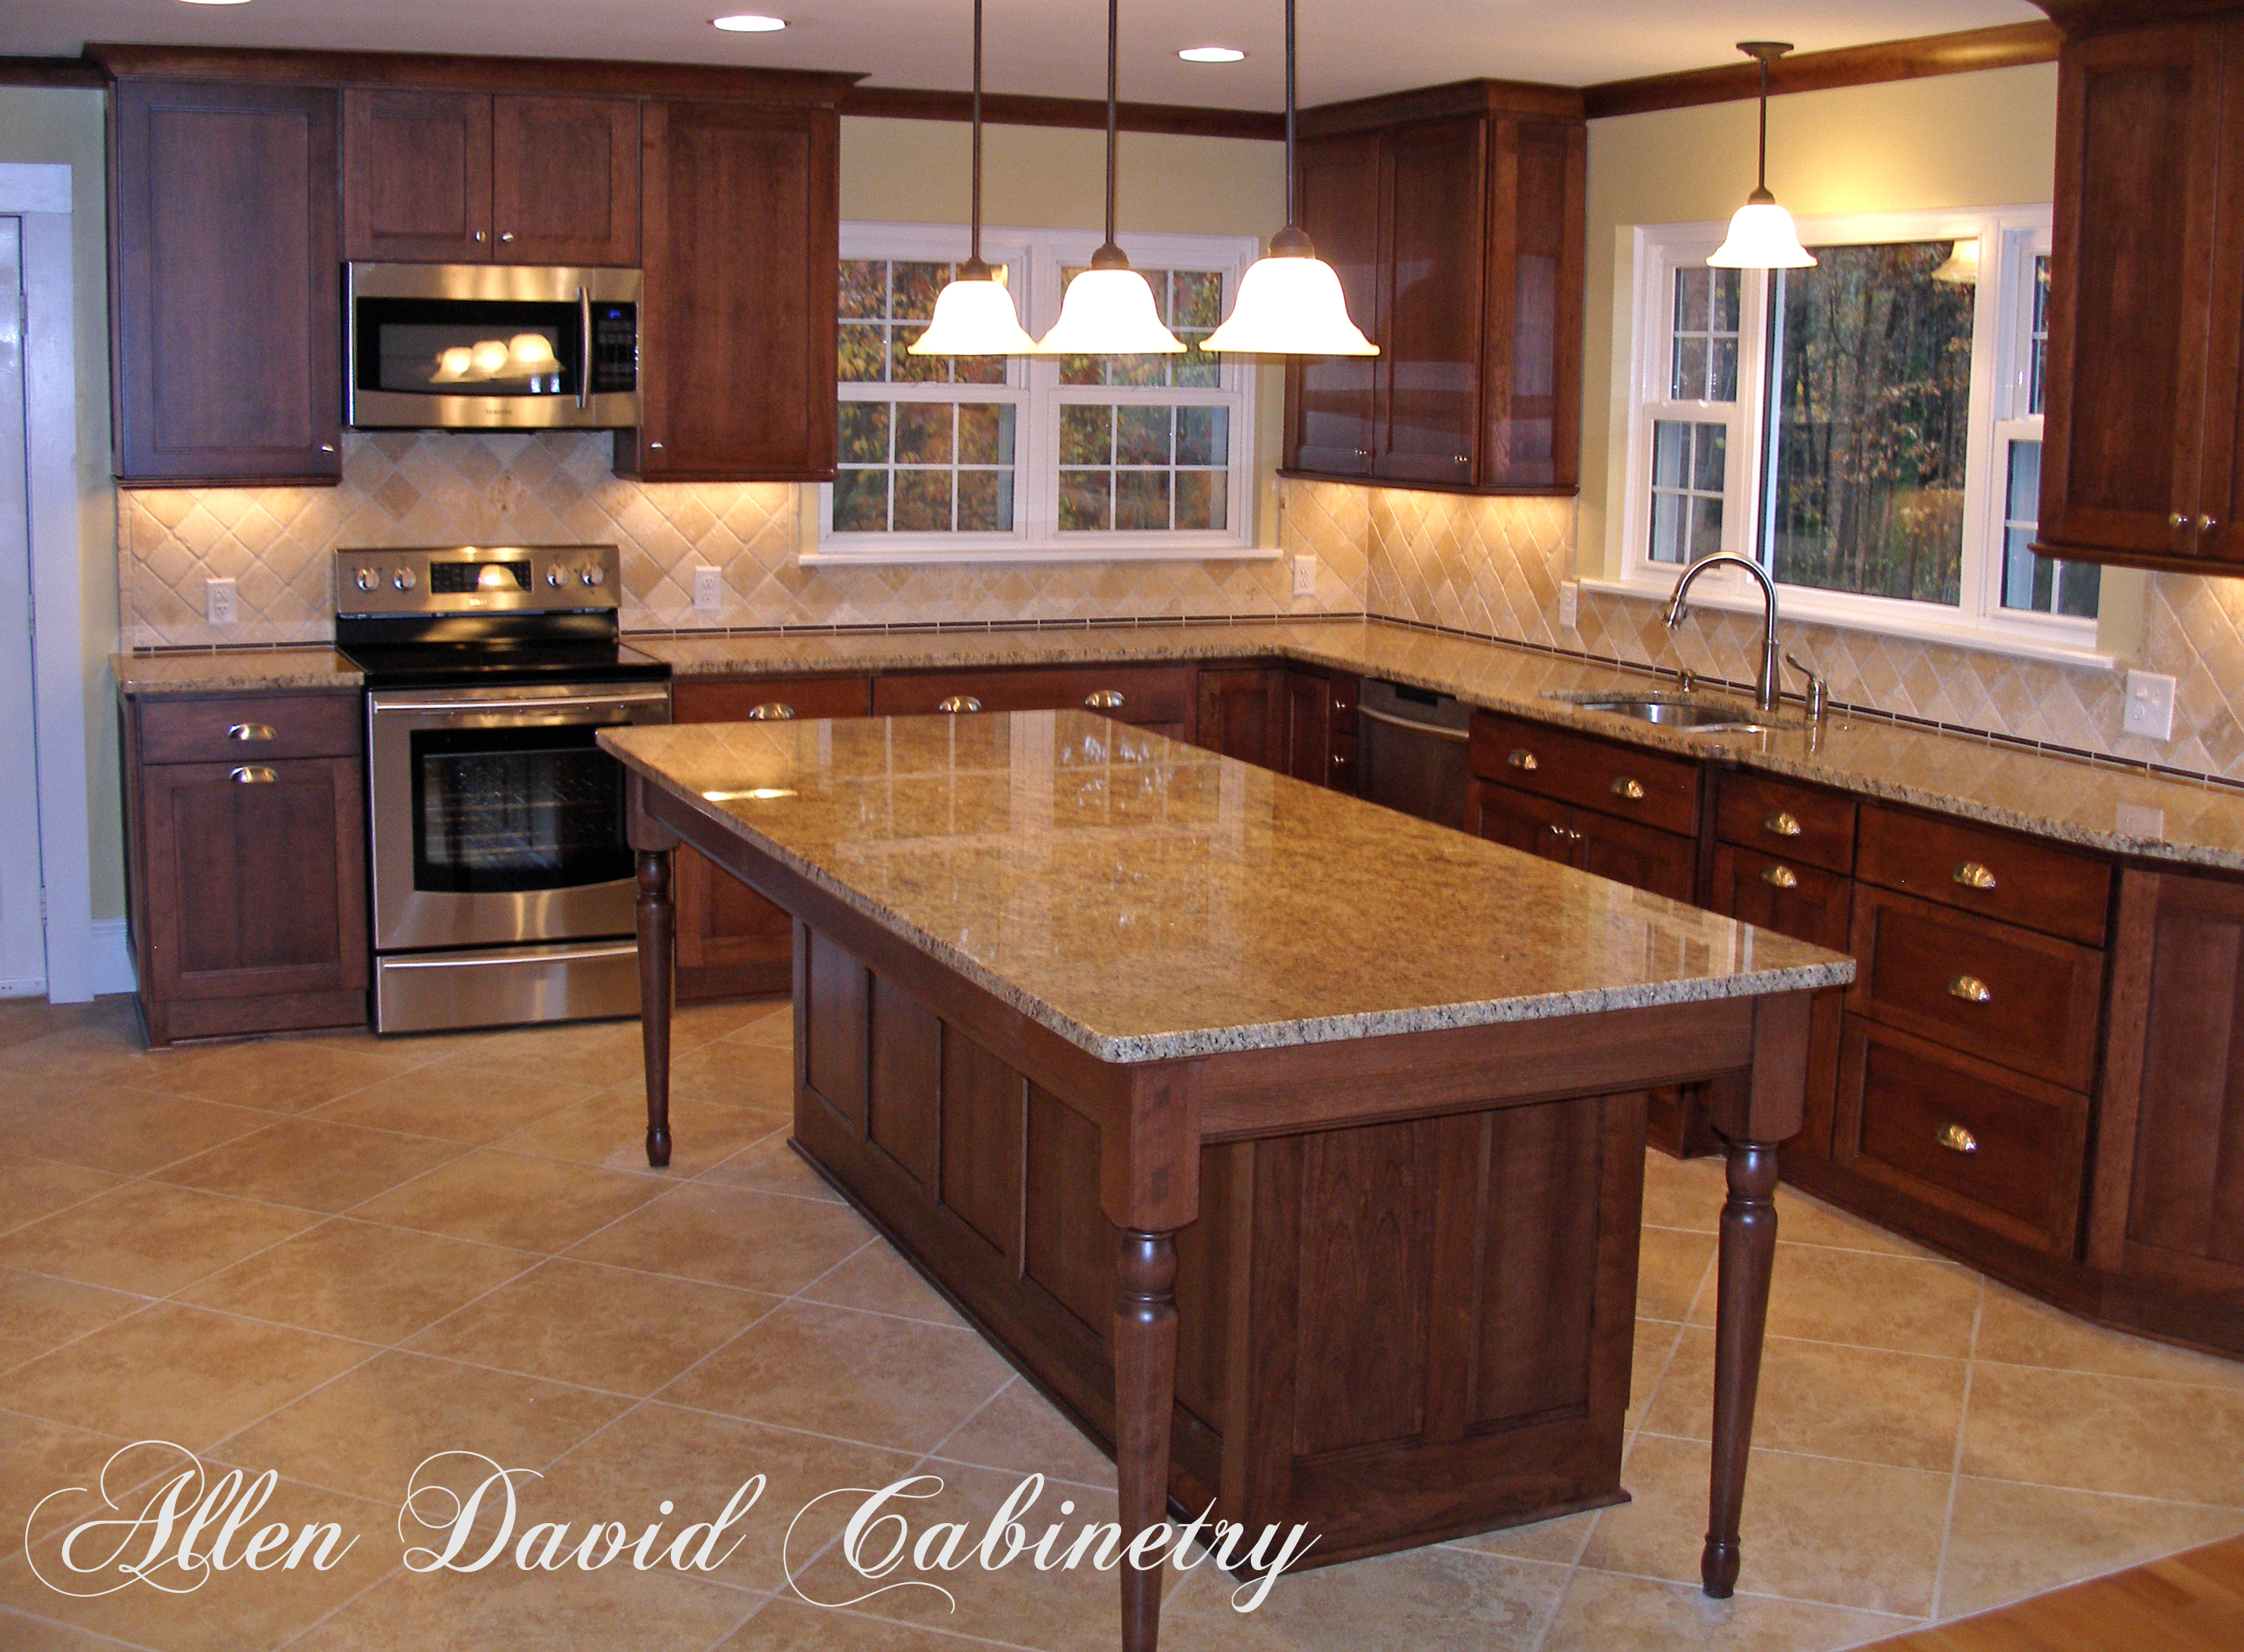 Kitchen remodel after picture-Allen David Cabinetry-(980) 722-9186